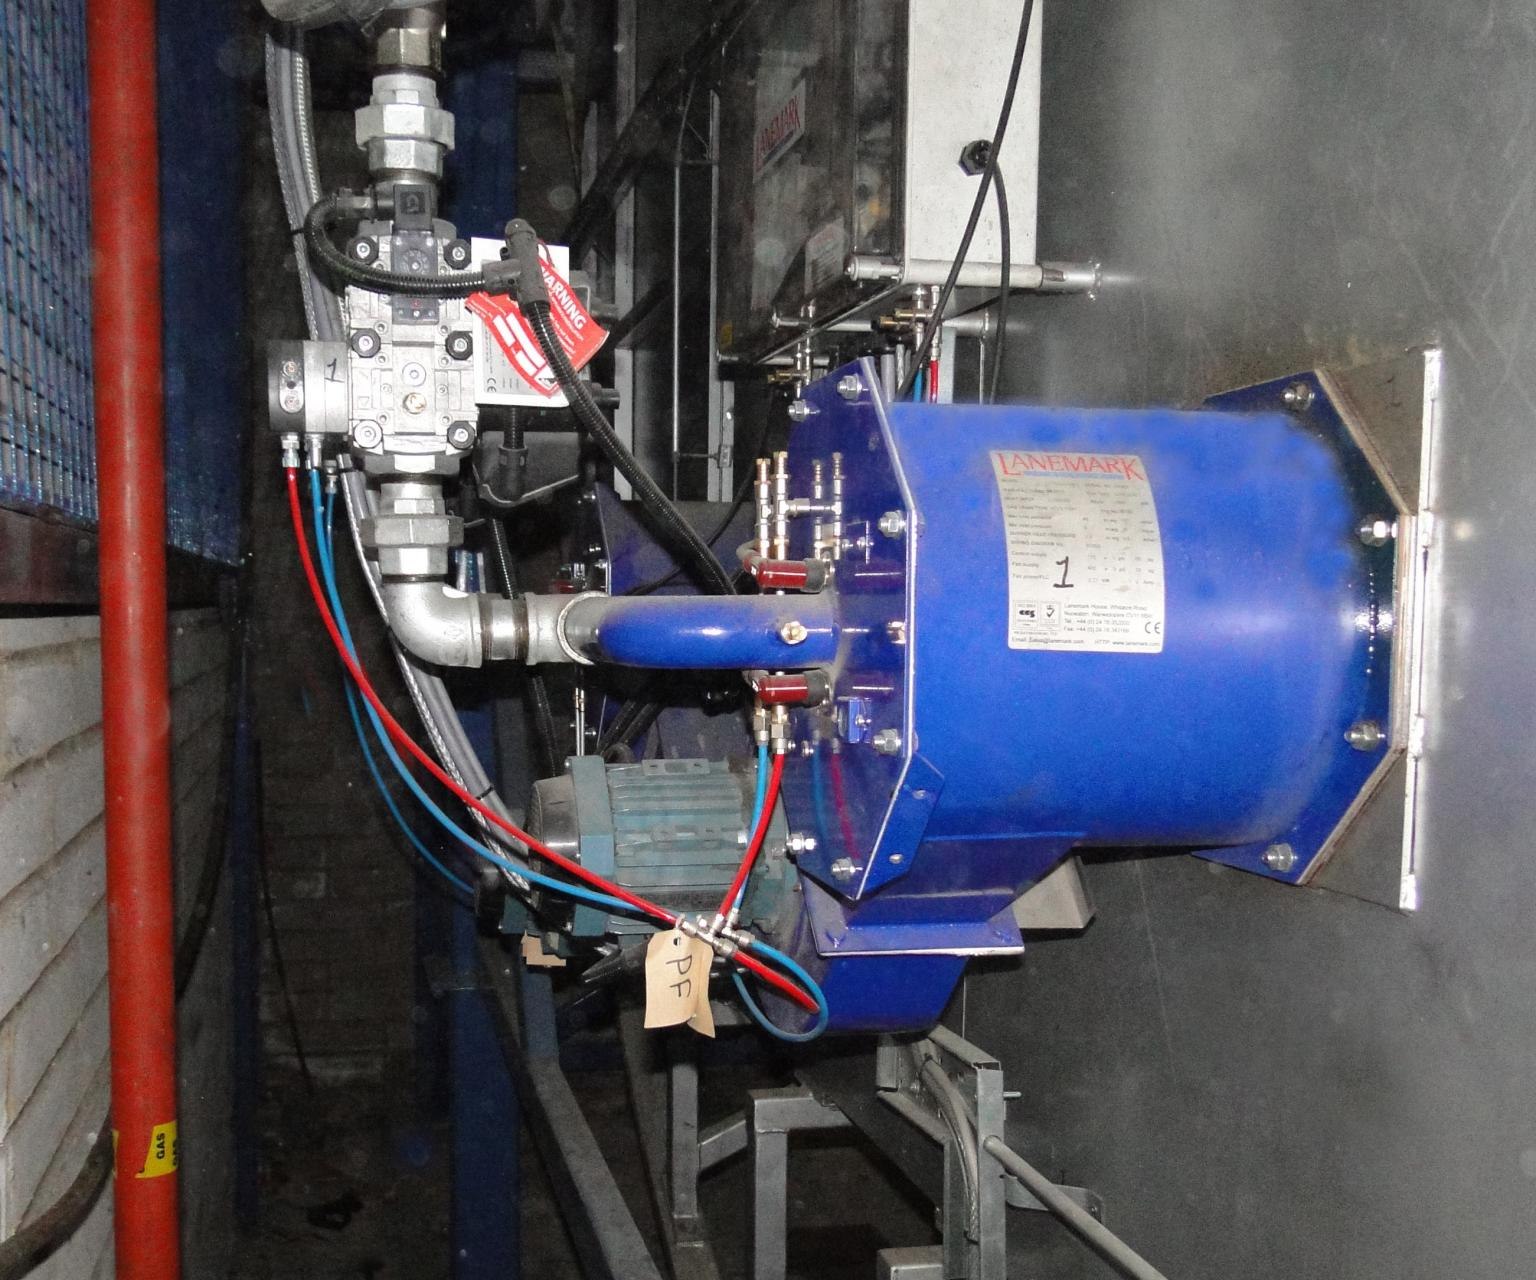 One of the FD process gas burner systems fitted to the rock-and-roll rotational moulding facility